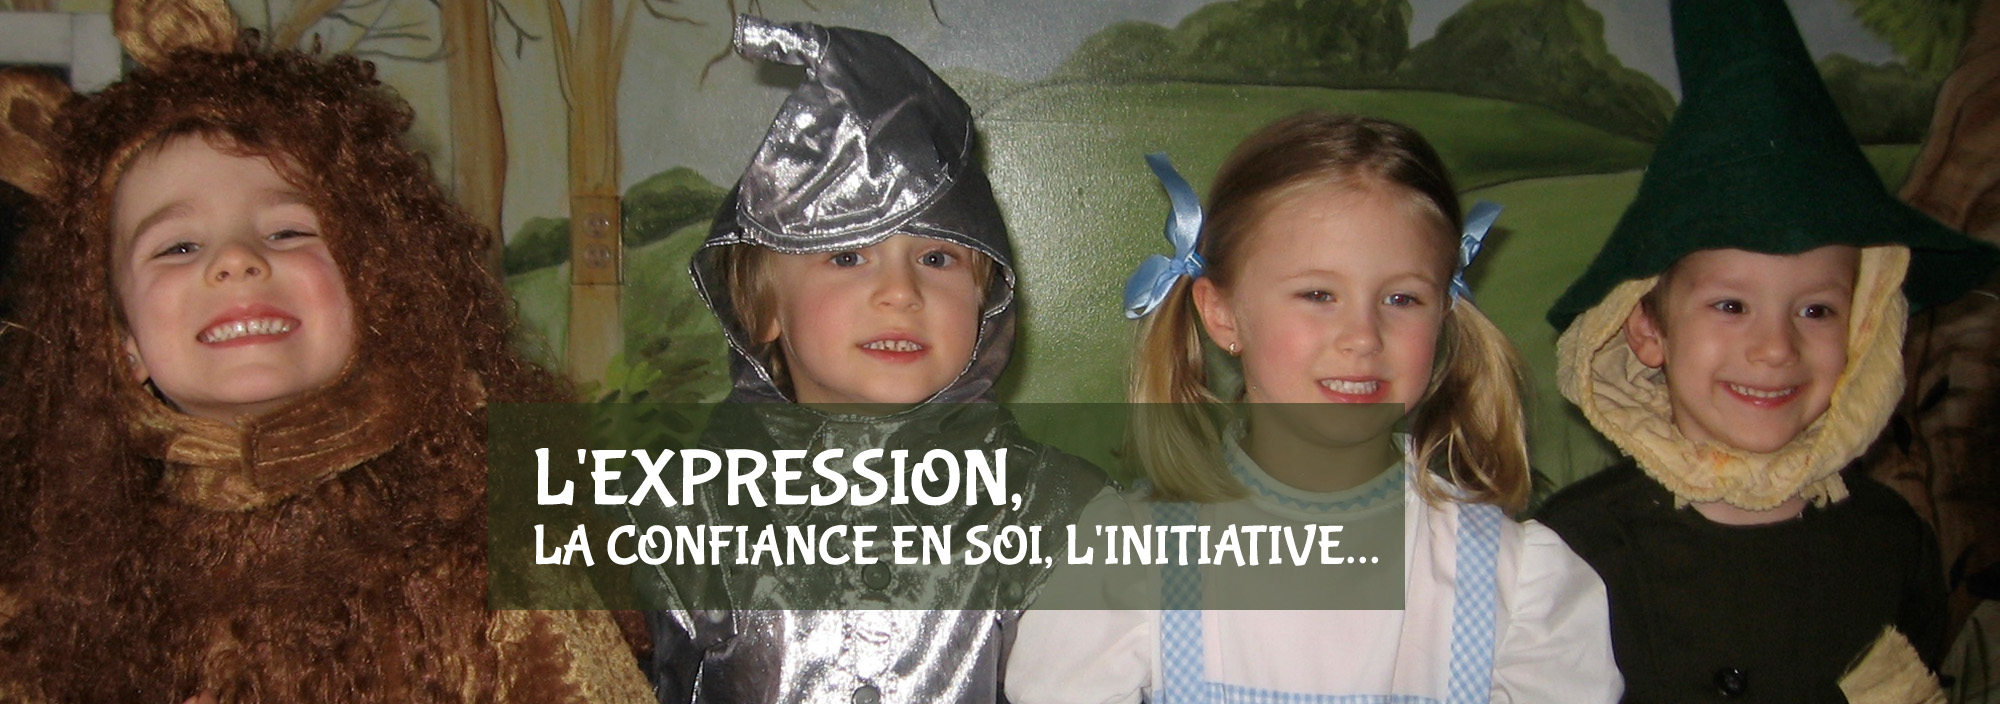 L'expression, la confiance en soi, l'initiative…